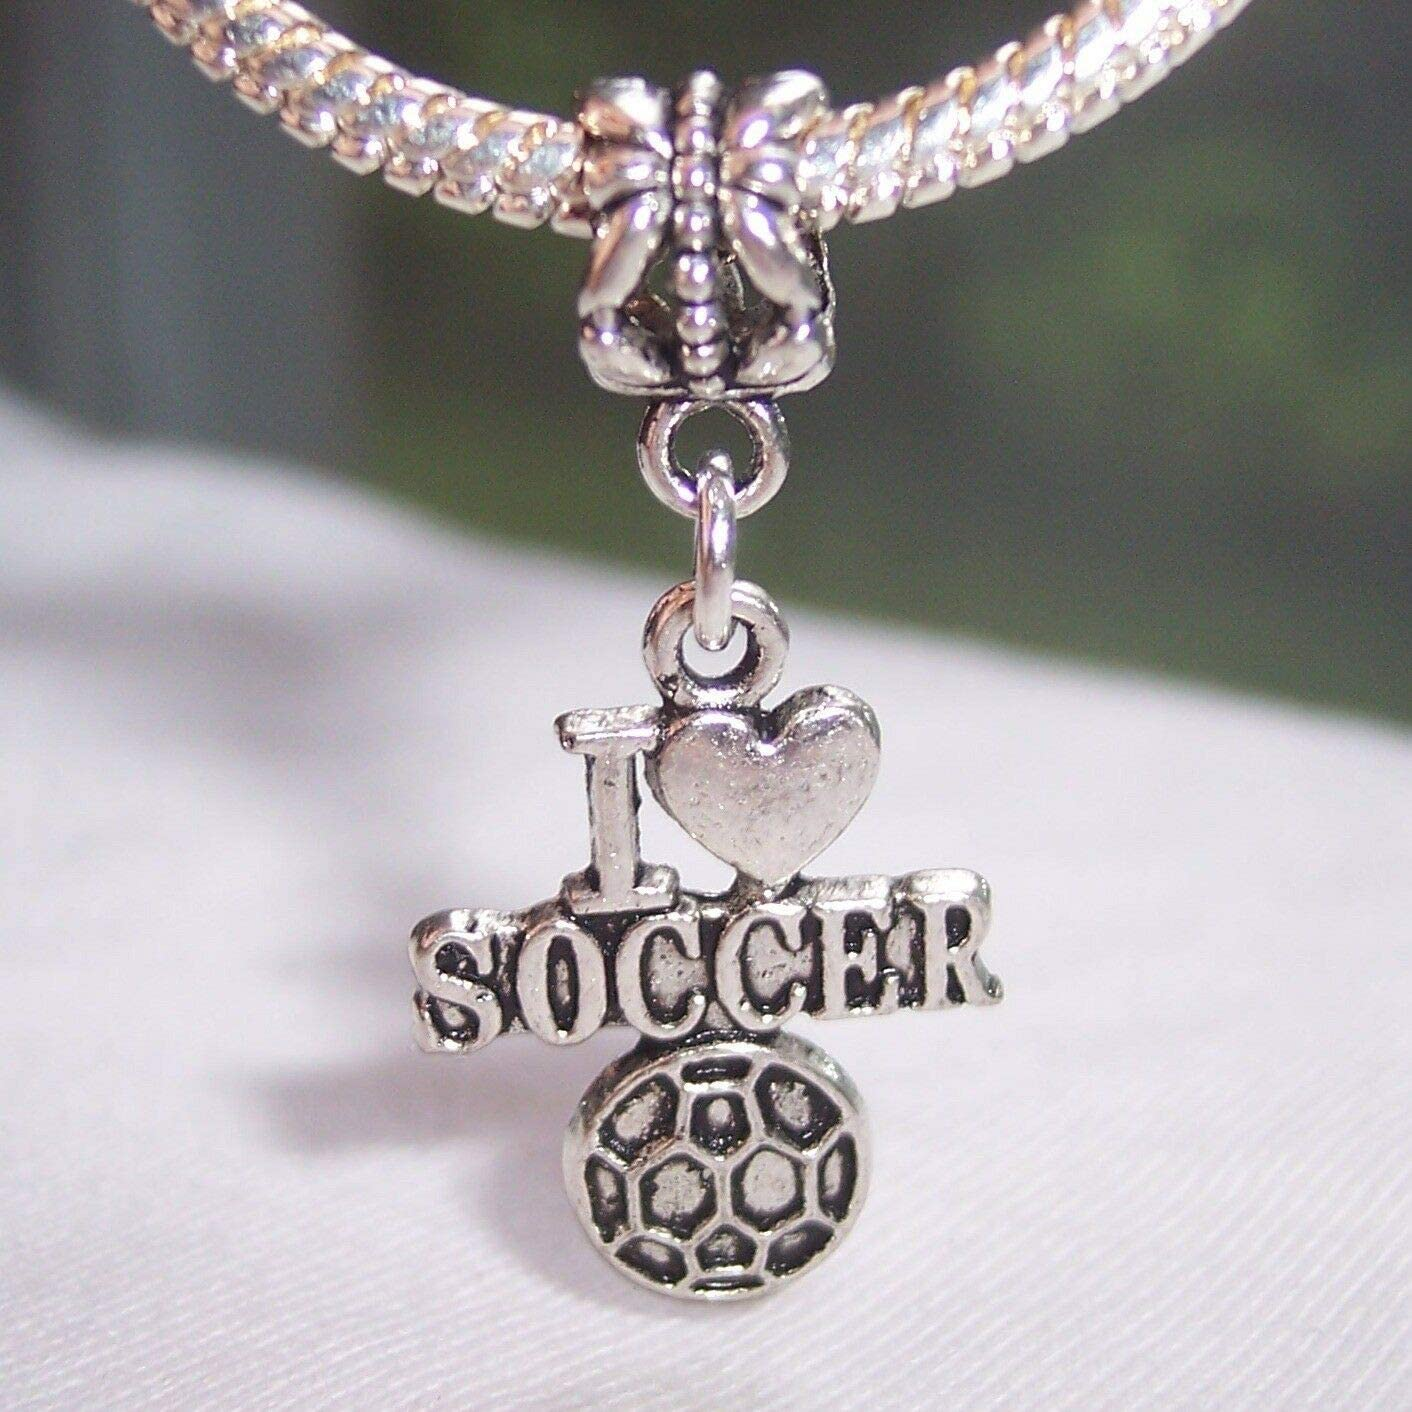 Charm Pendant - Jewelry Making DIY I Heart Soccer Ball Love Sports Word Dangle Charm for European Bead Bracelets